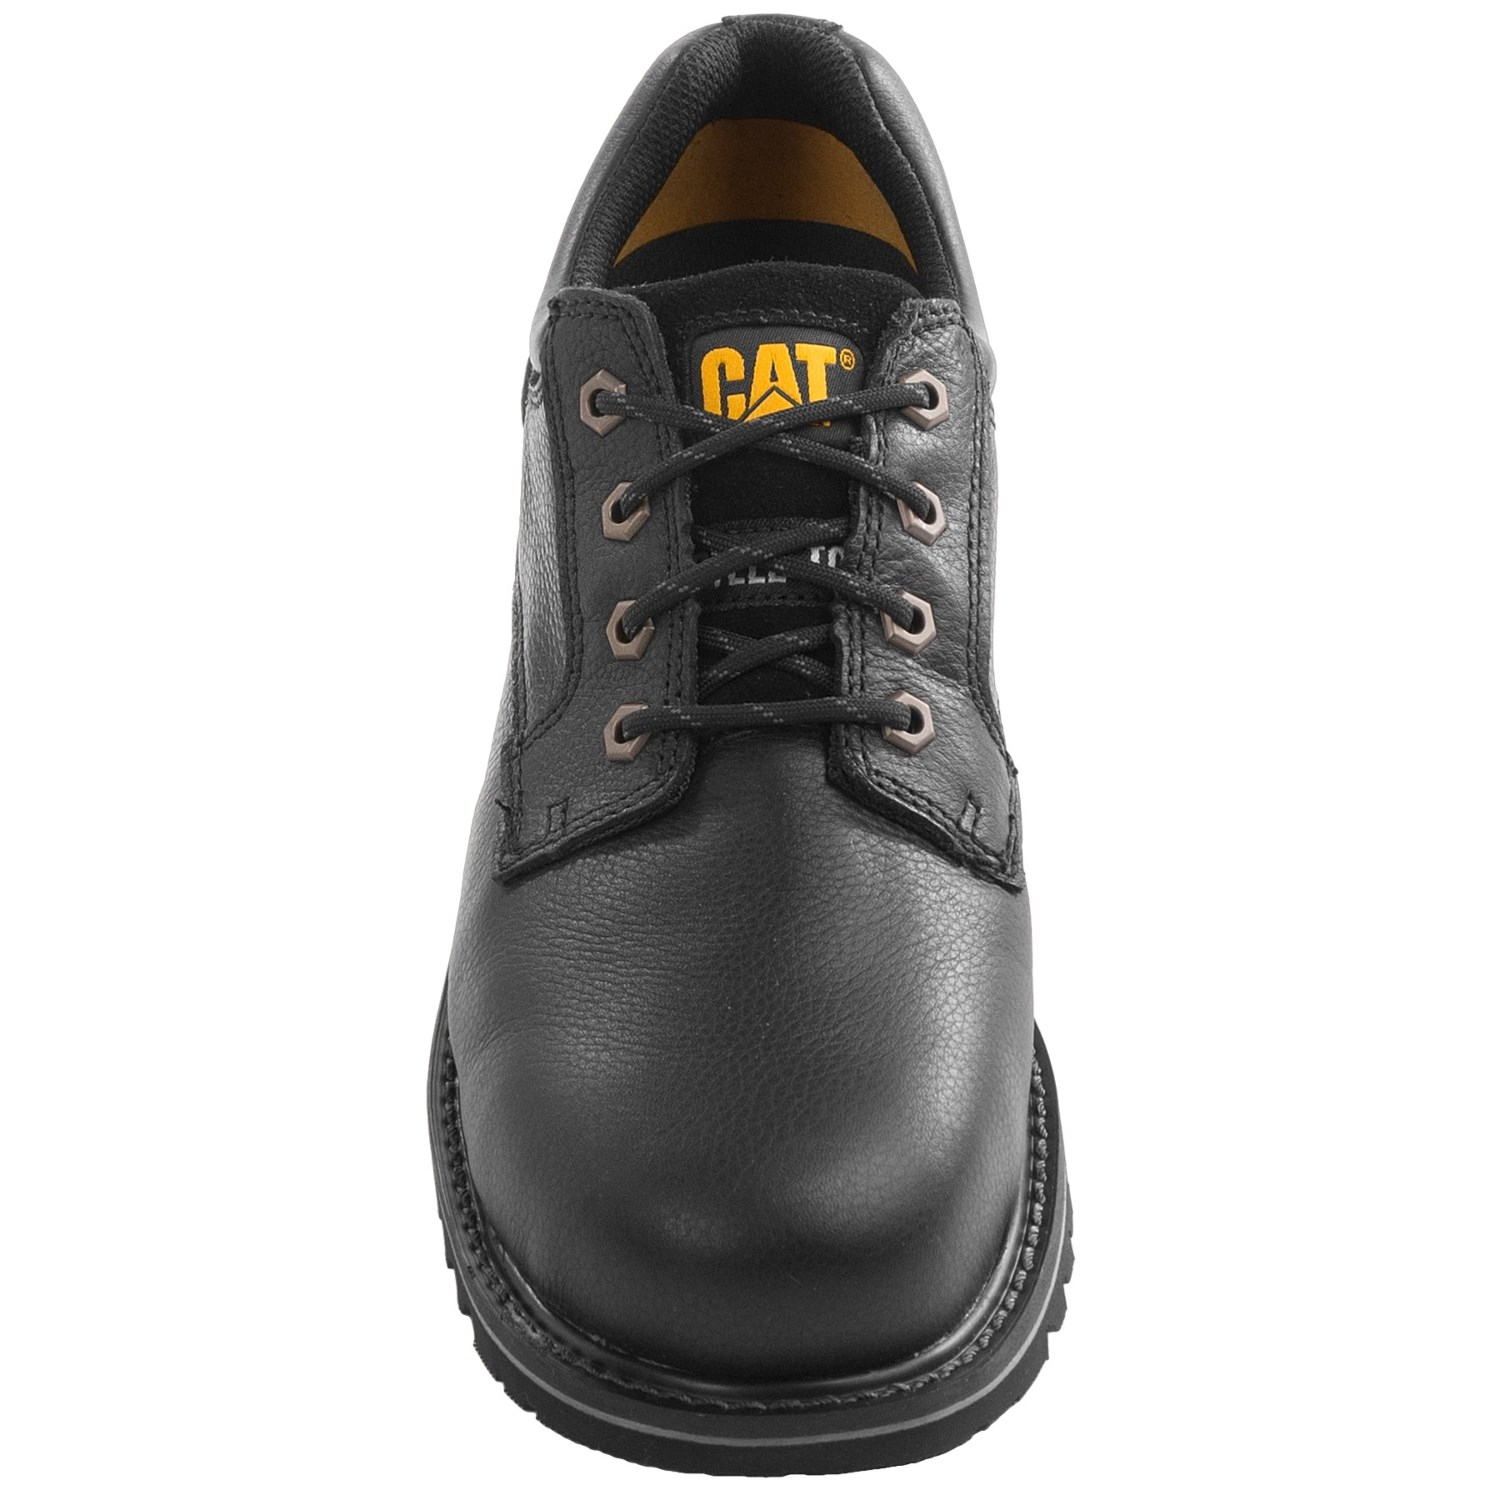 Caterpillar Electric Work Shoes (For Men) 8994R - Save 52%